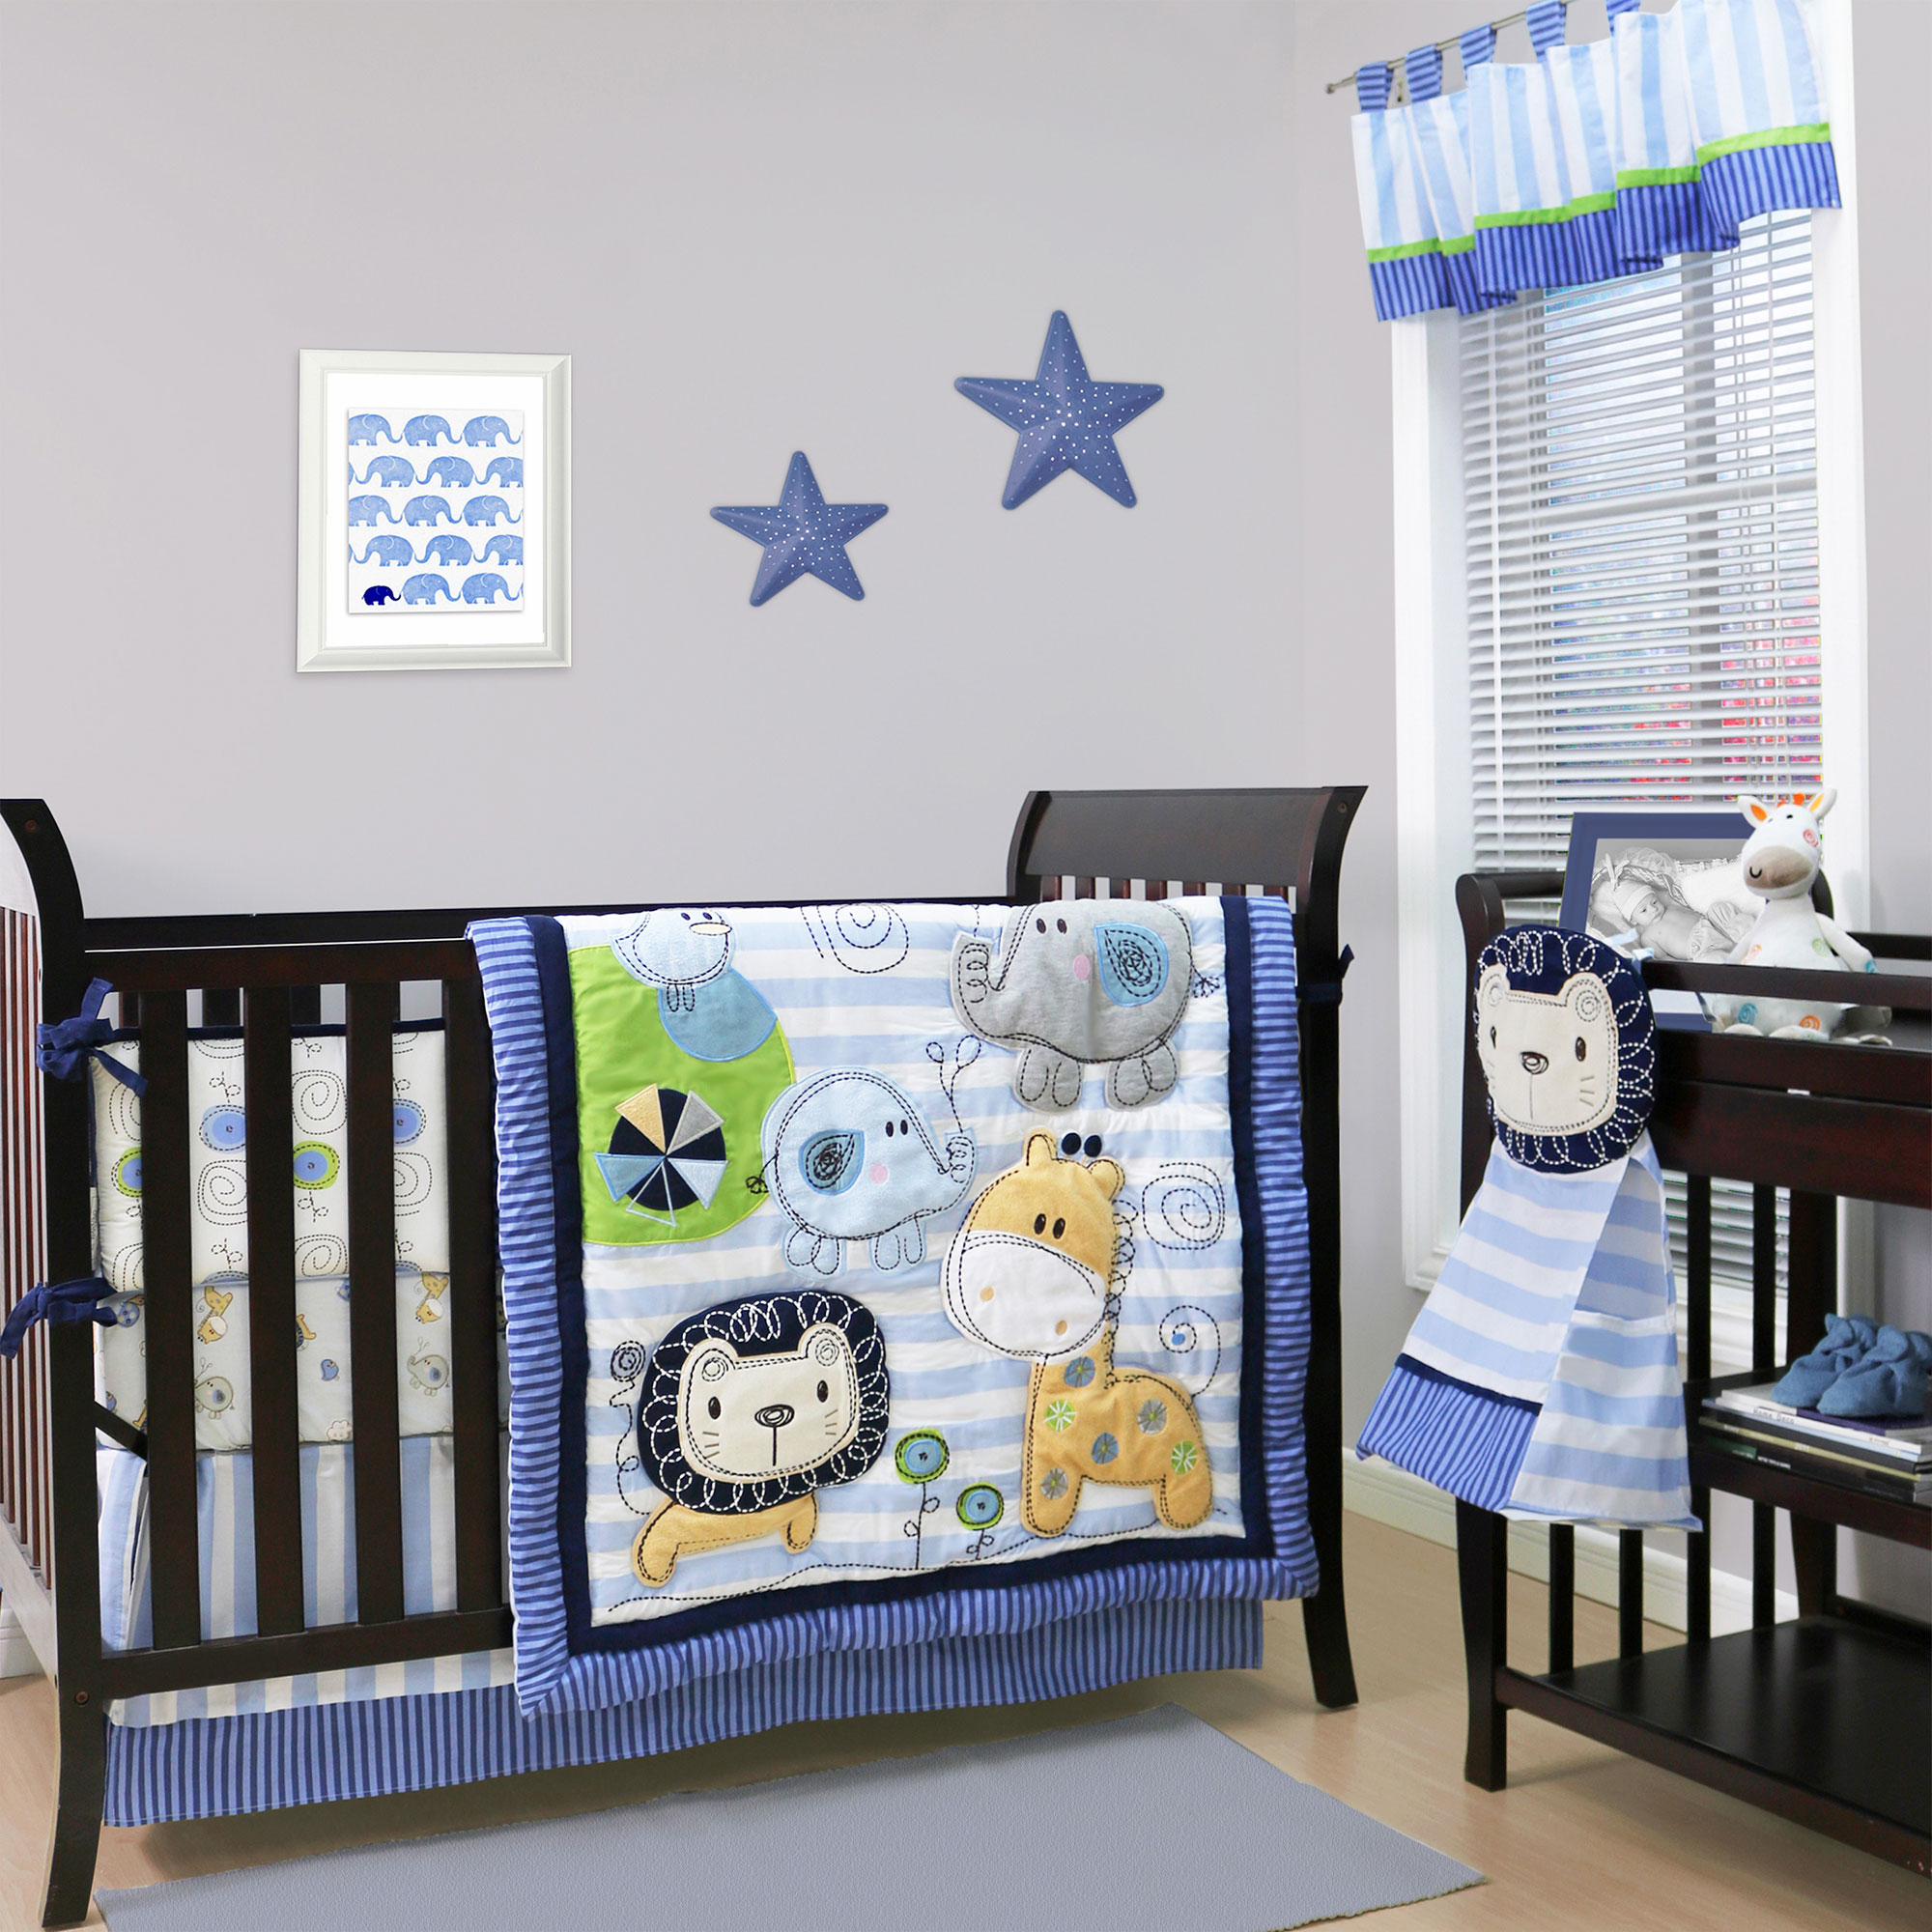 Belle Baby Crib Bedding Set - Blue Jungle Theme - Baby Sketches 4 ...